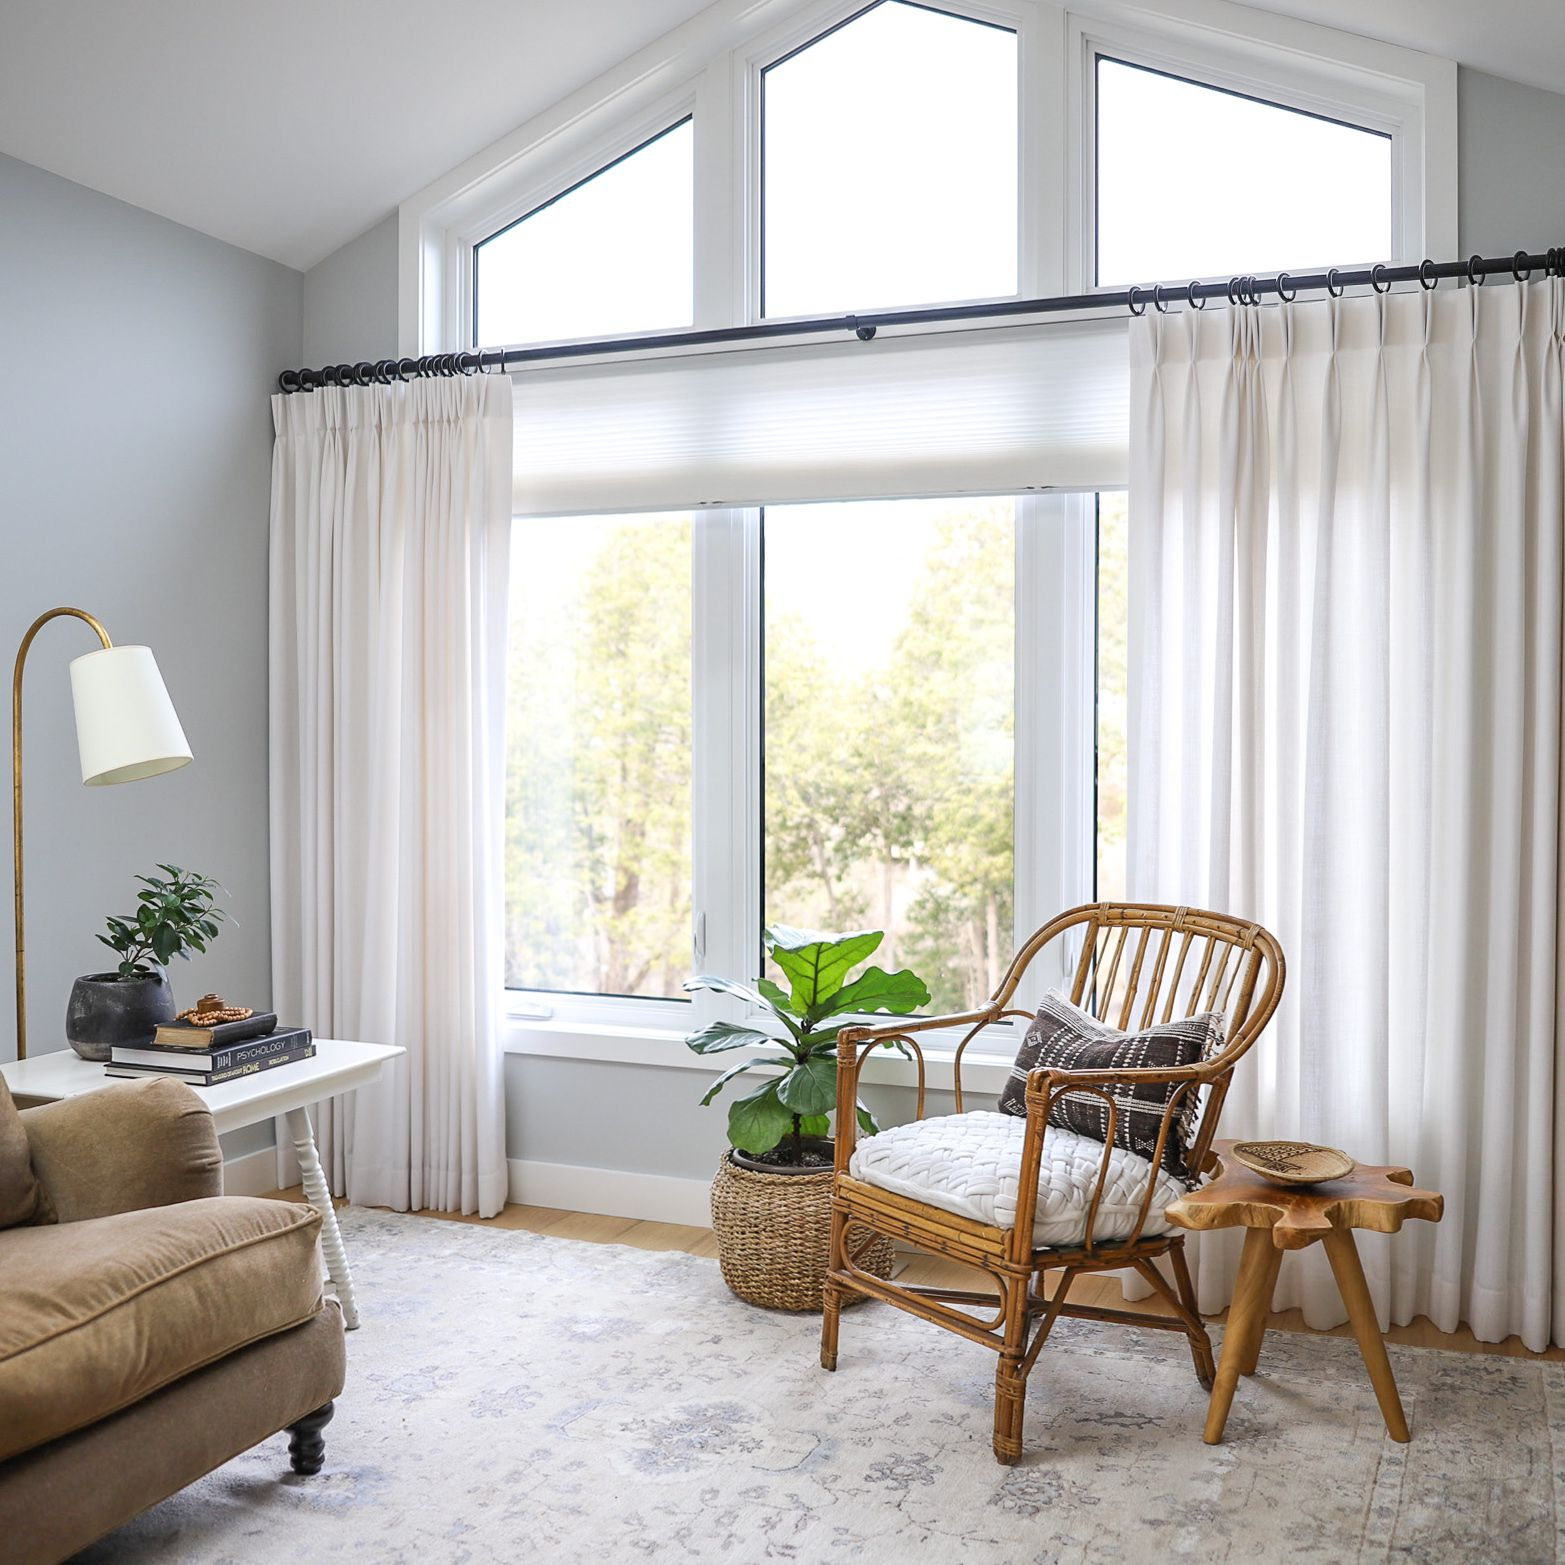 The 7 Dos And Don Ts Of Finding The Perfect Curtains